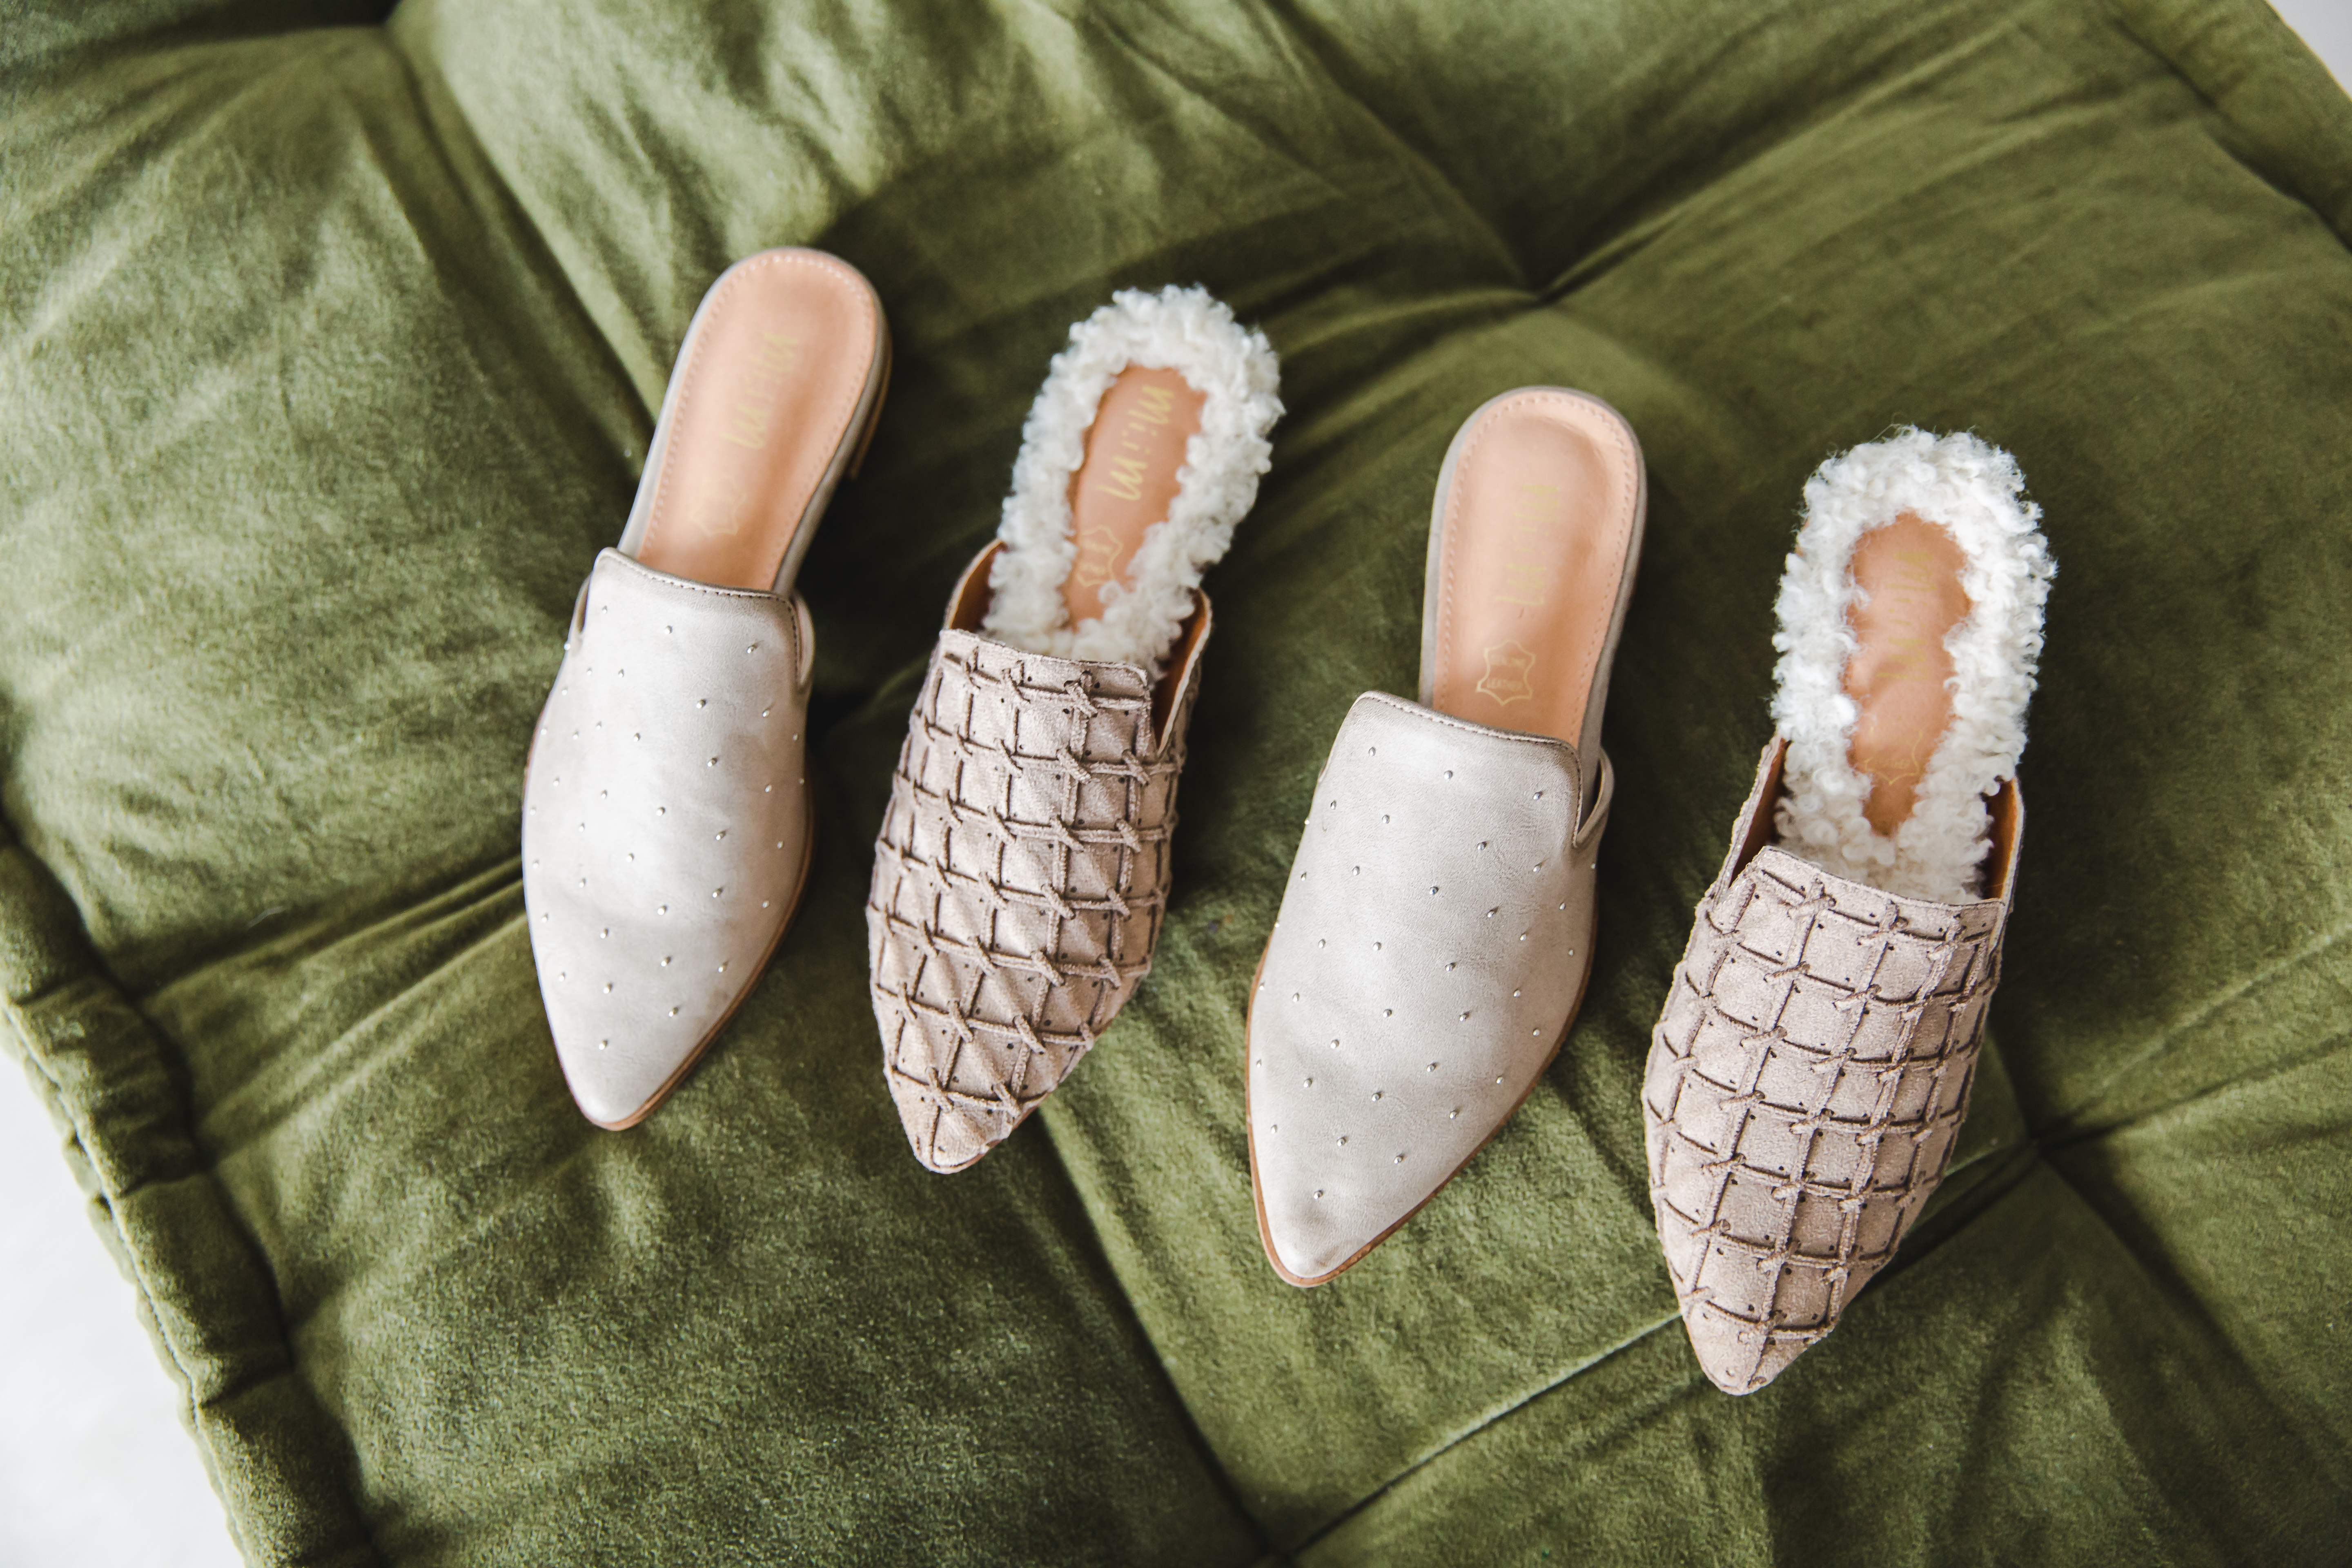 Loafers are one of our top trends of 2018